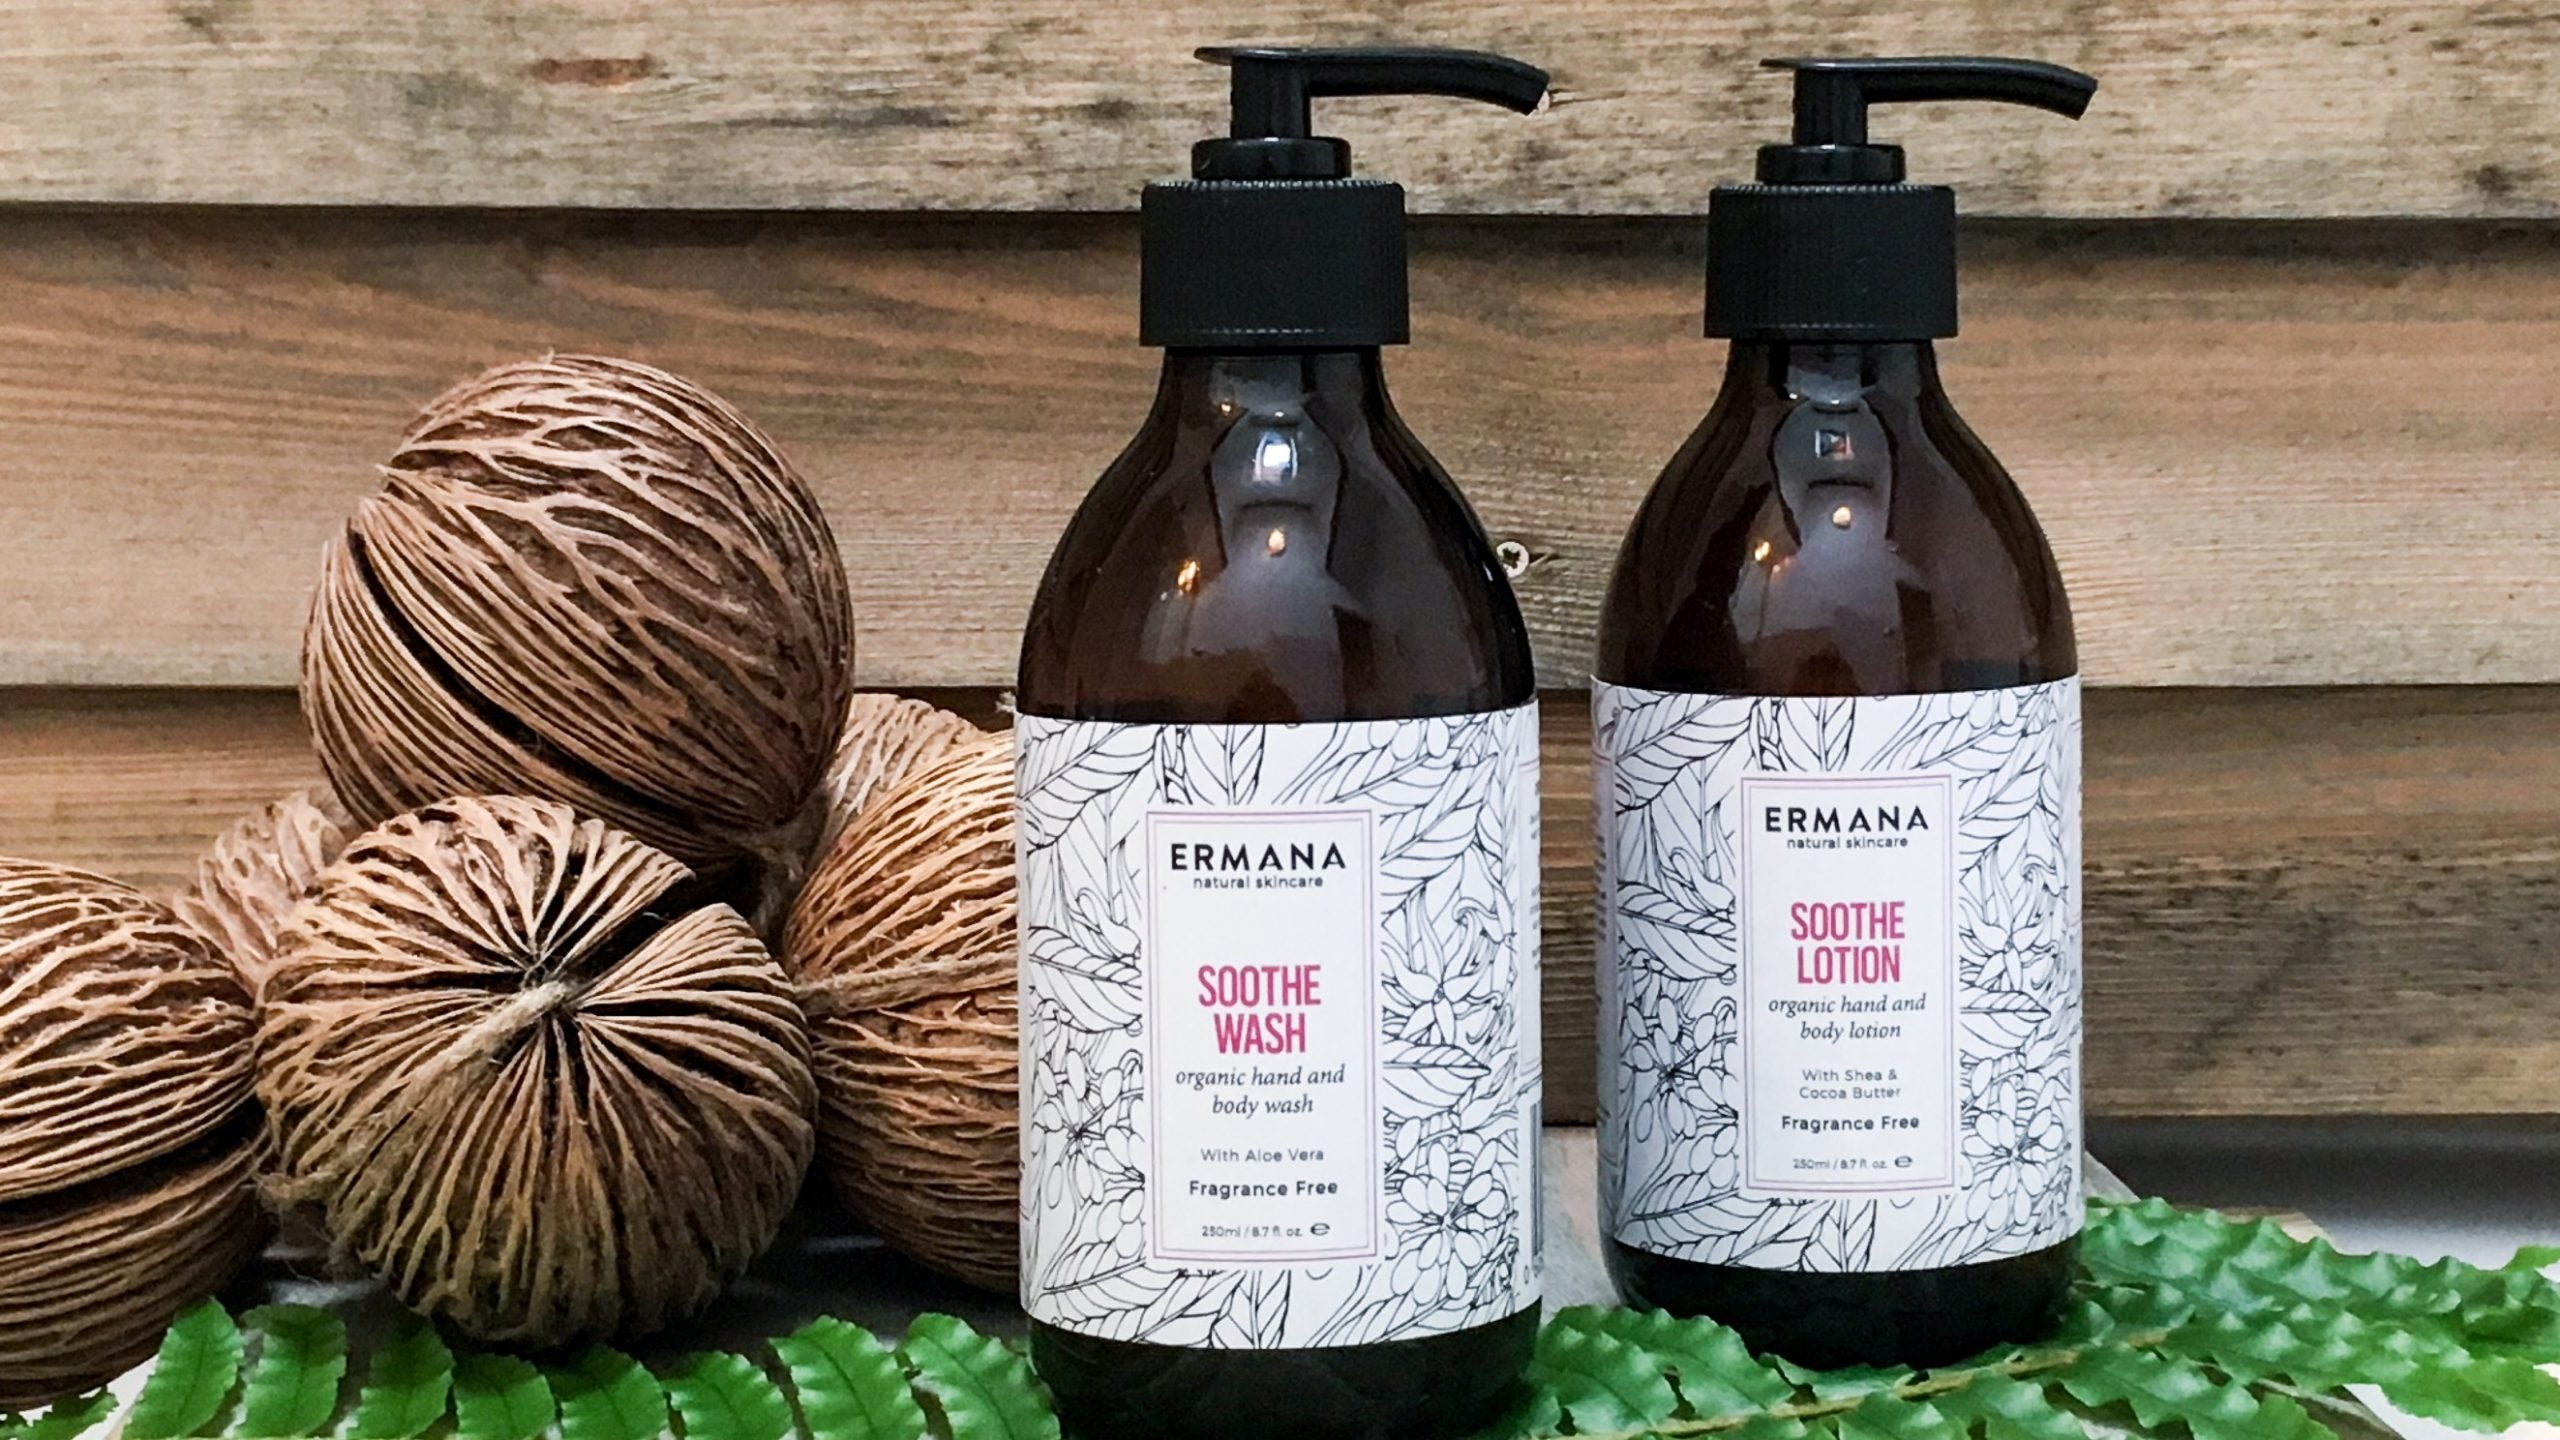 Soothe Organic Hand & Body Lotion 250ml - Ermana Natural Skincare